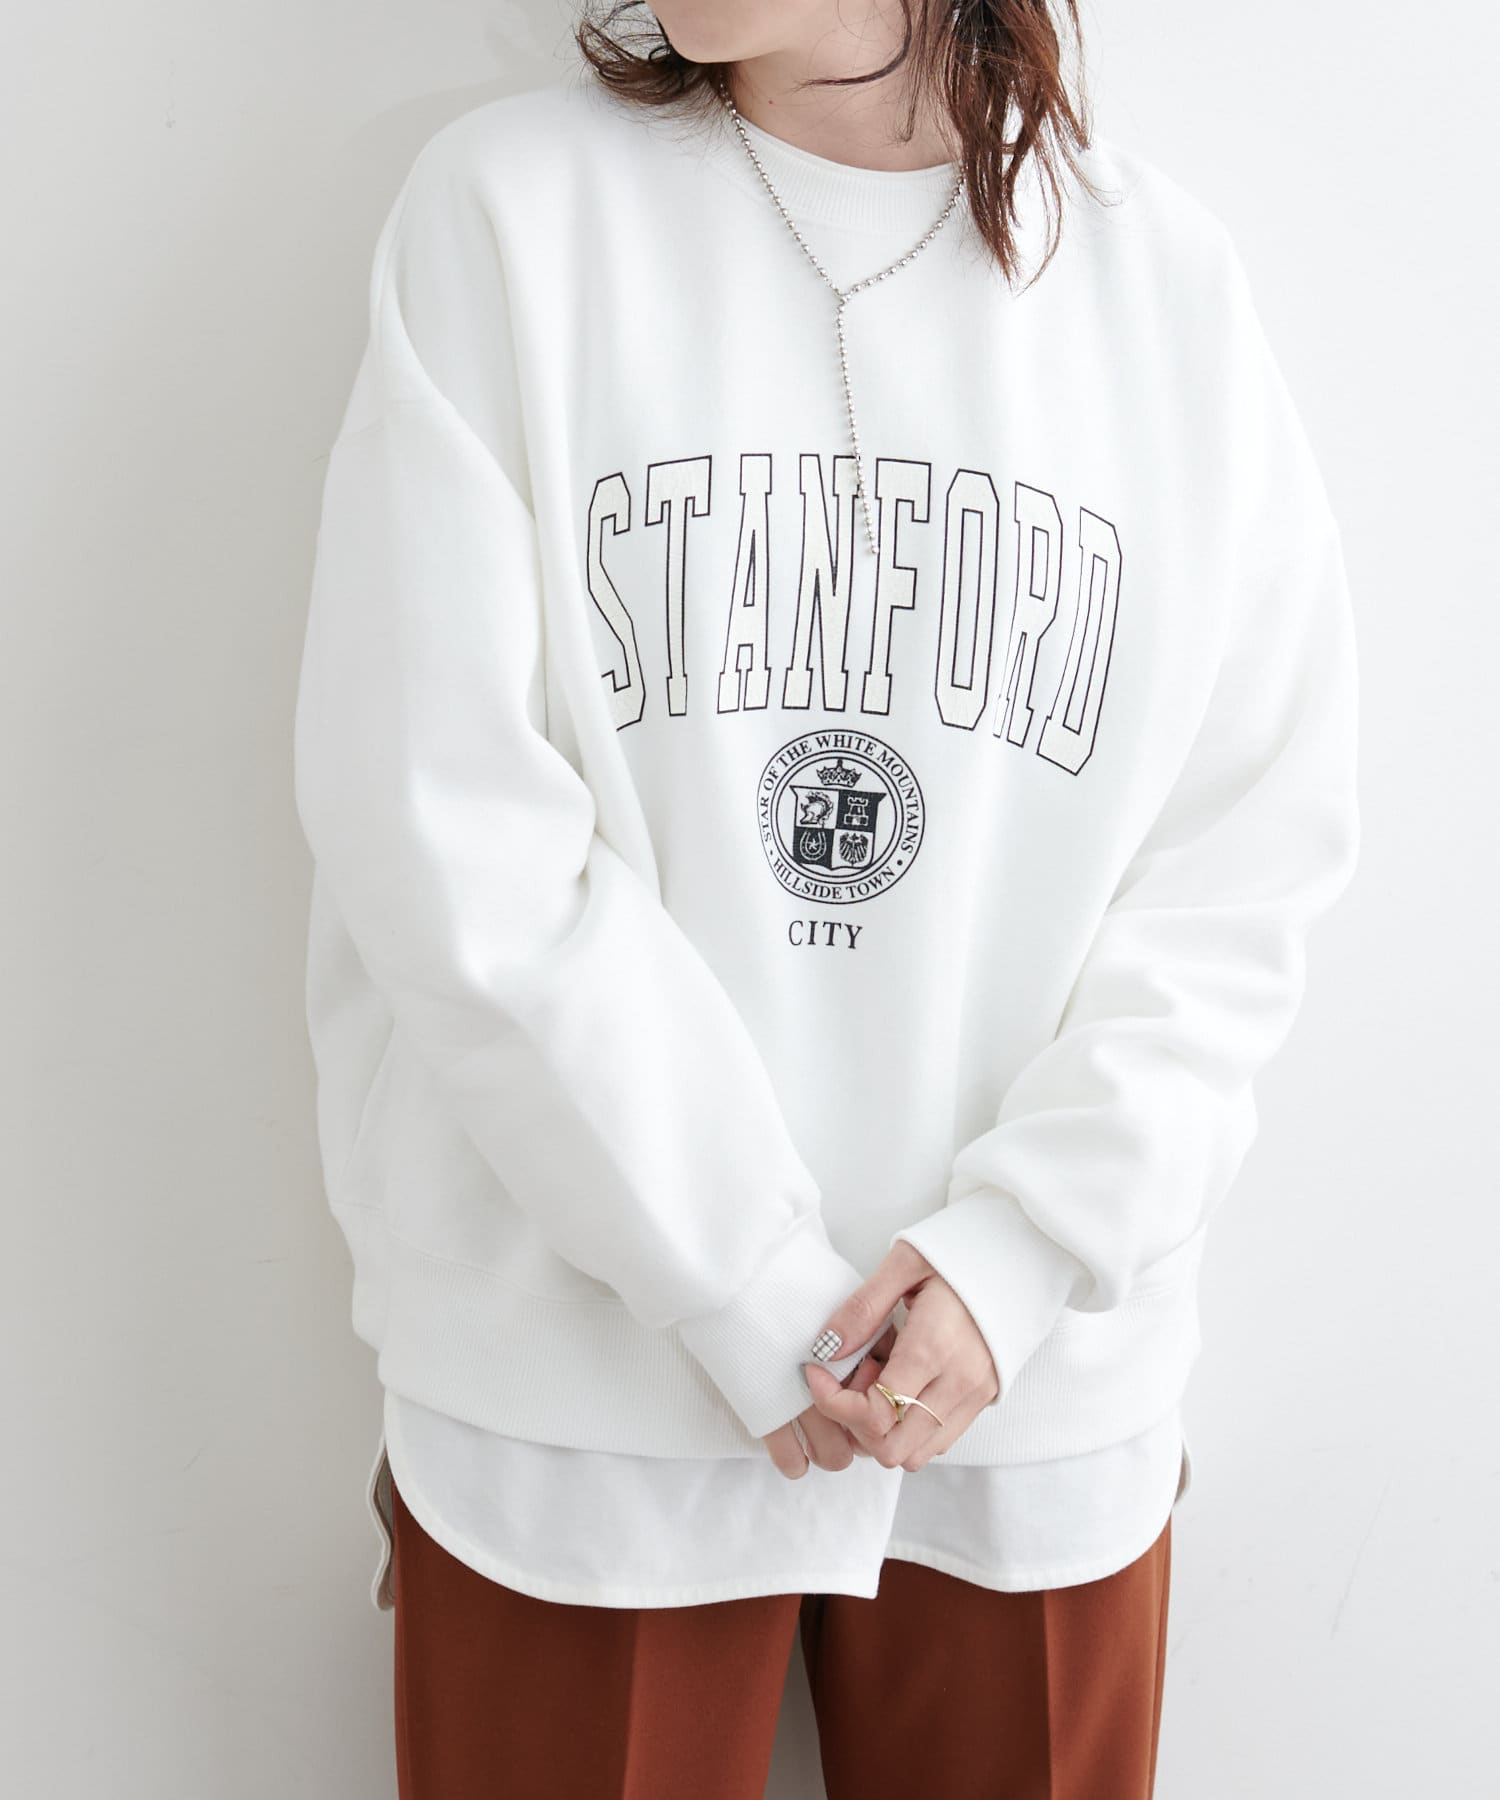 NICE CLAUP OUTLET(ナイスクラップ アウトレット) カレッジロゴptルーズPO